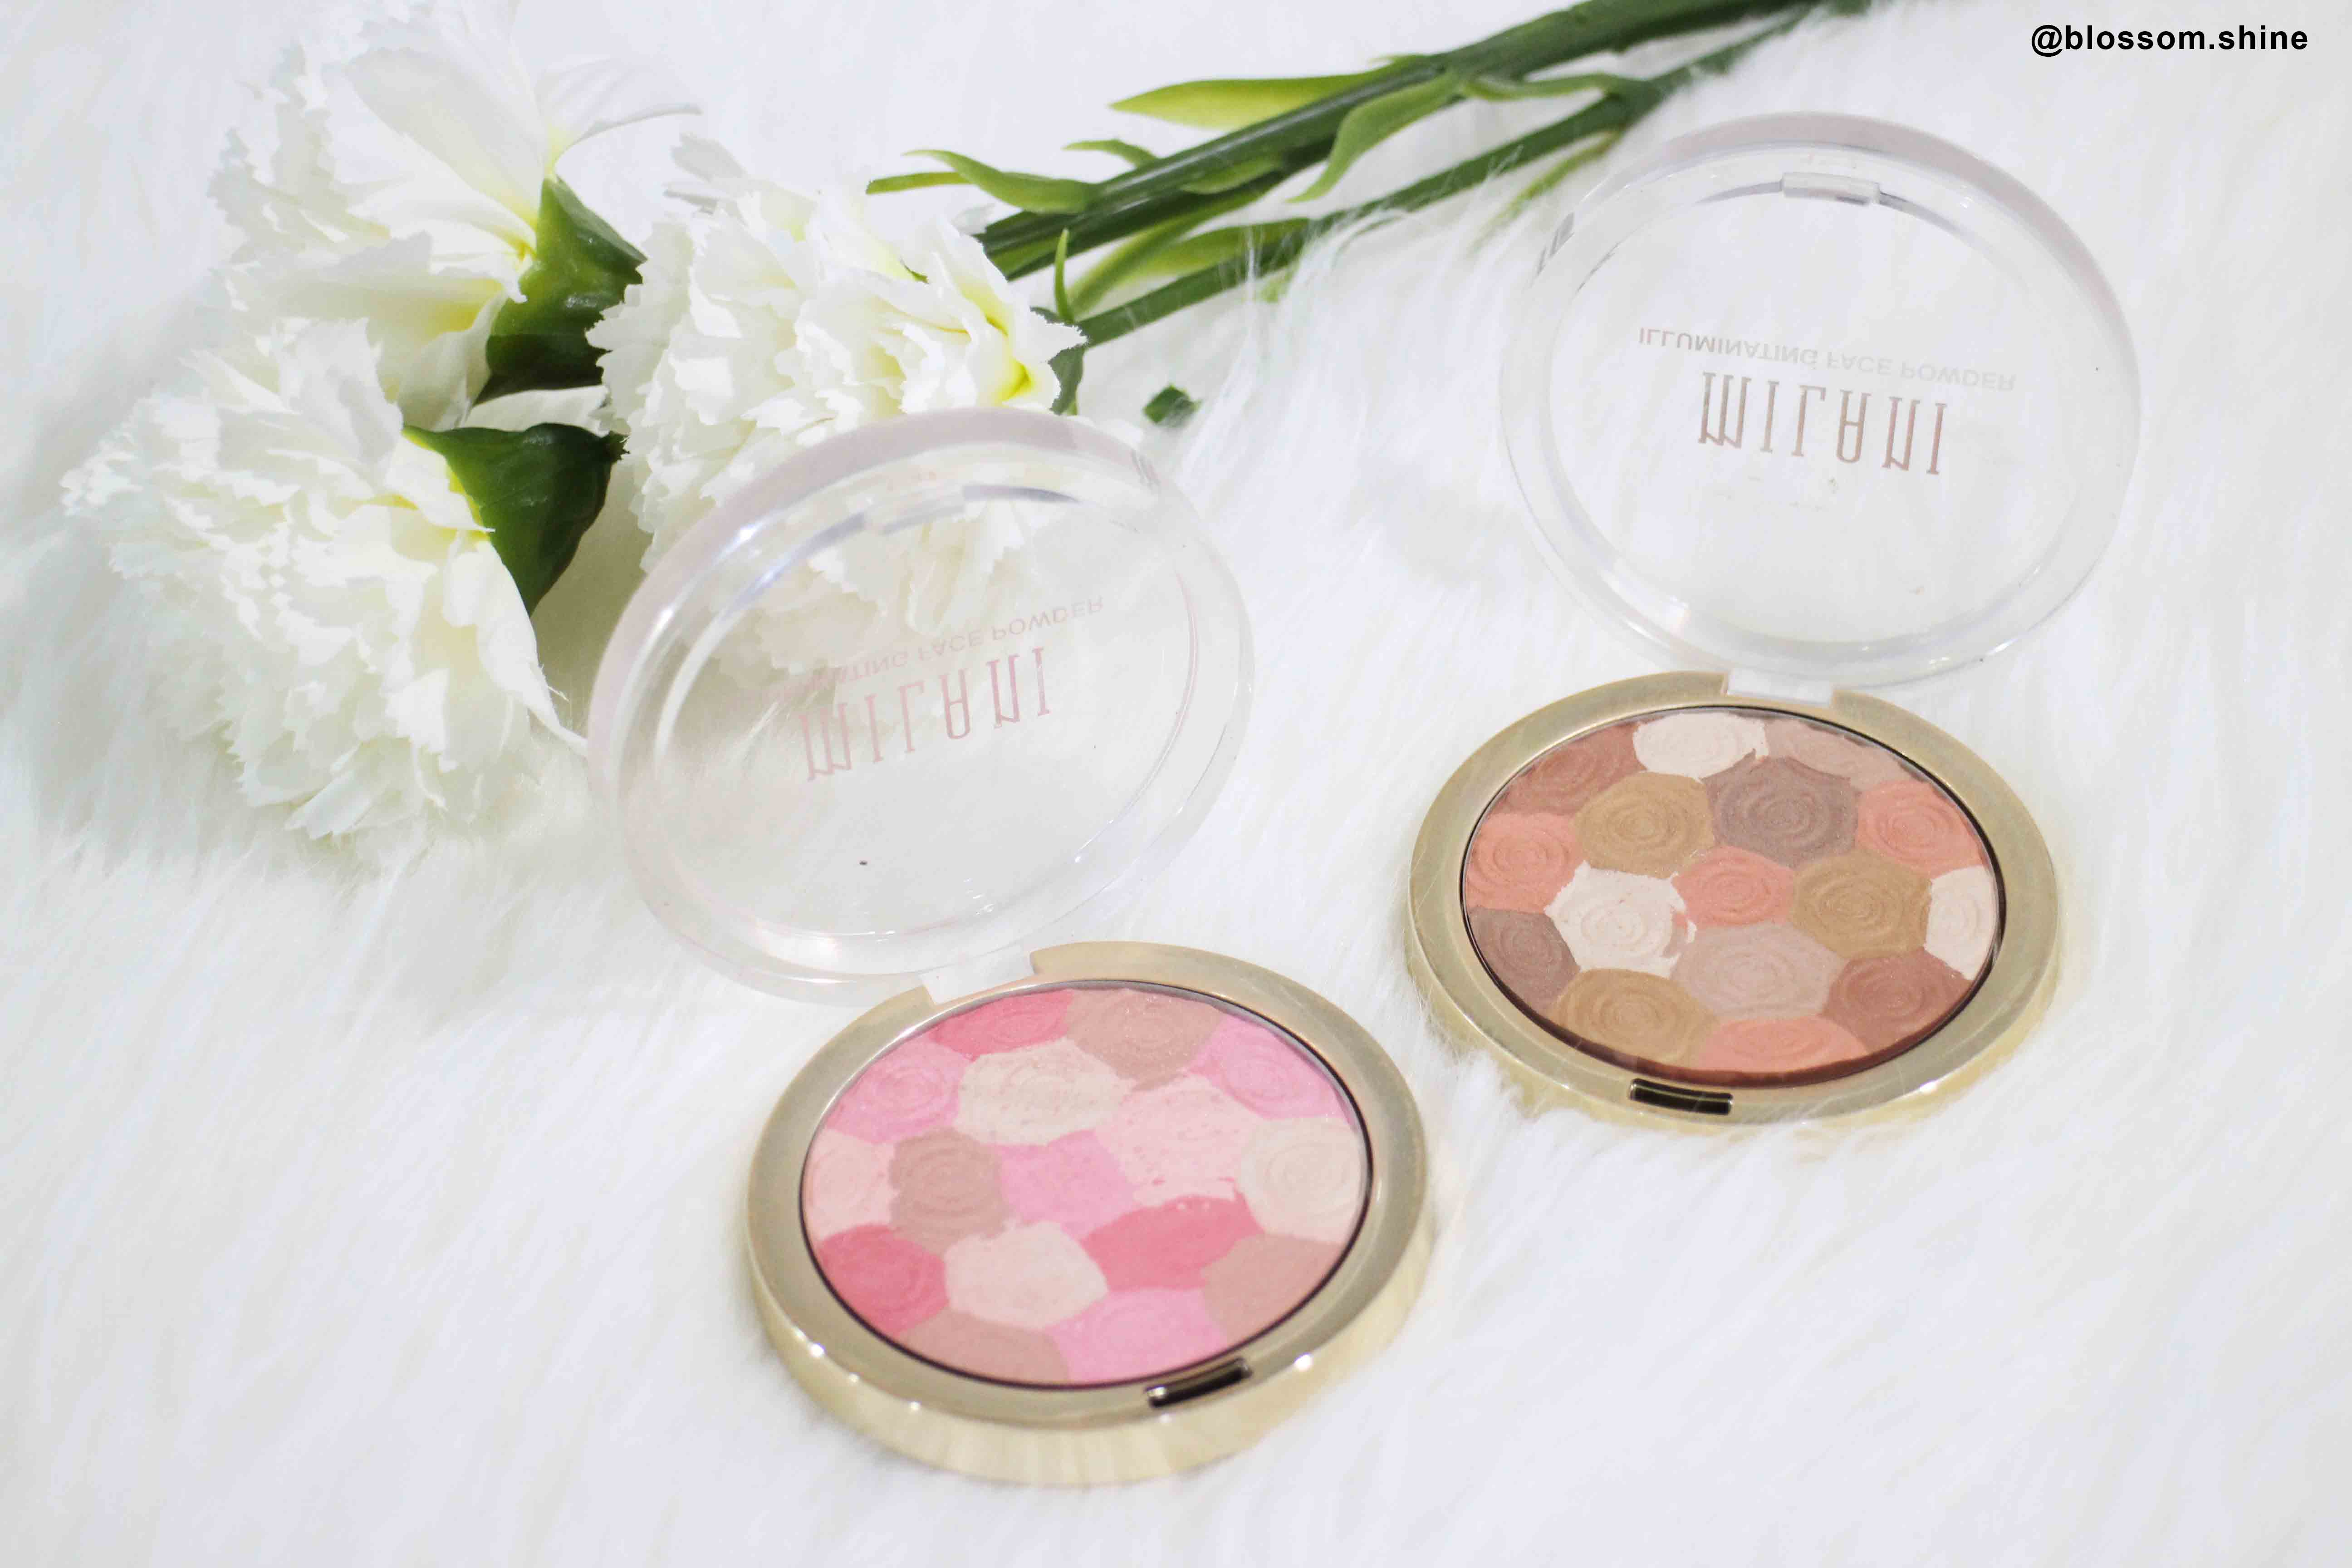 Milani Illuminating Face Powder [Makeup Review]